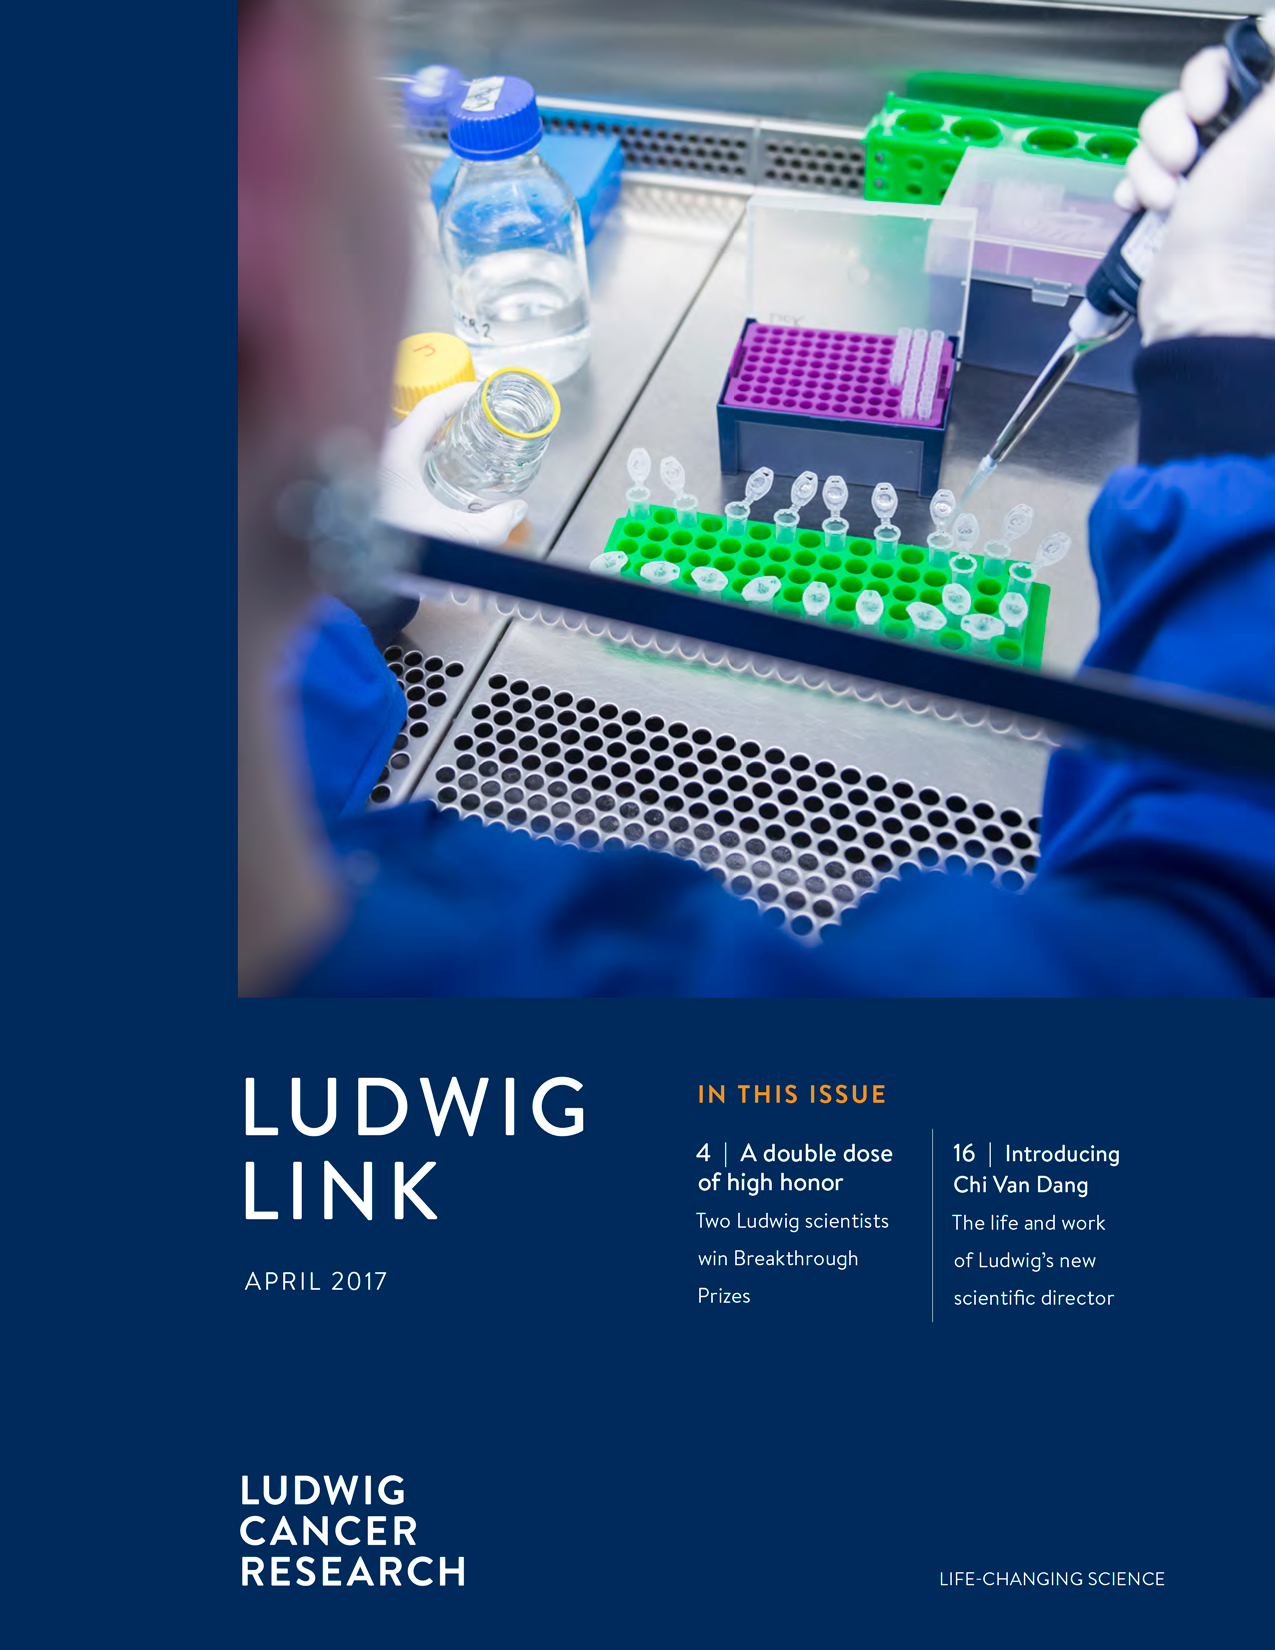 Ludwig Link April 2017 cover